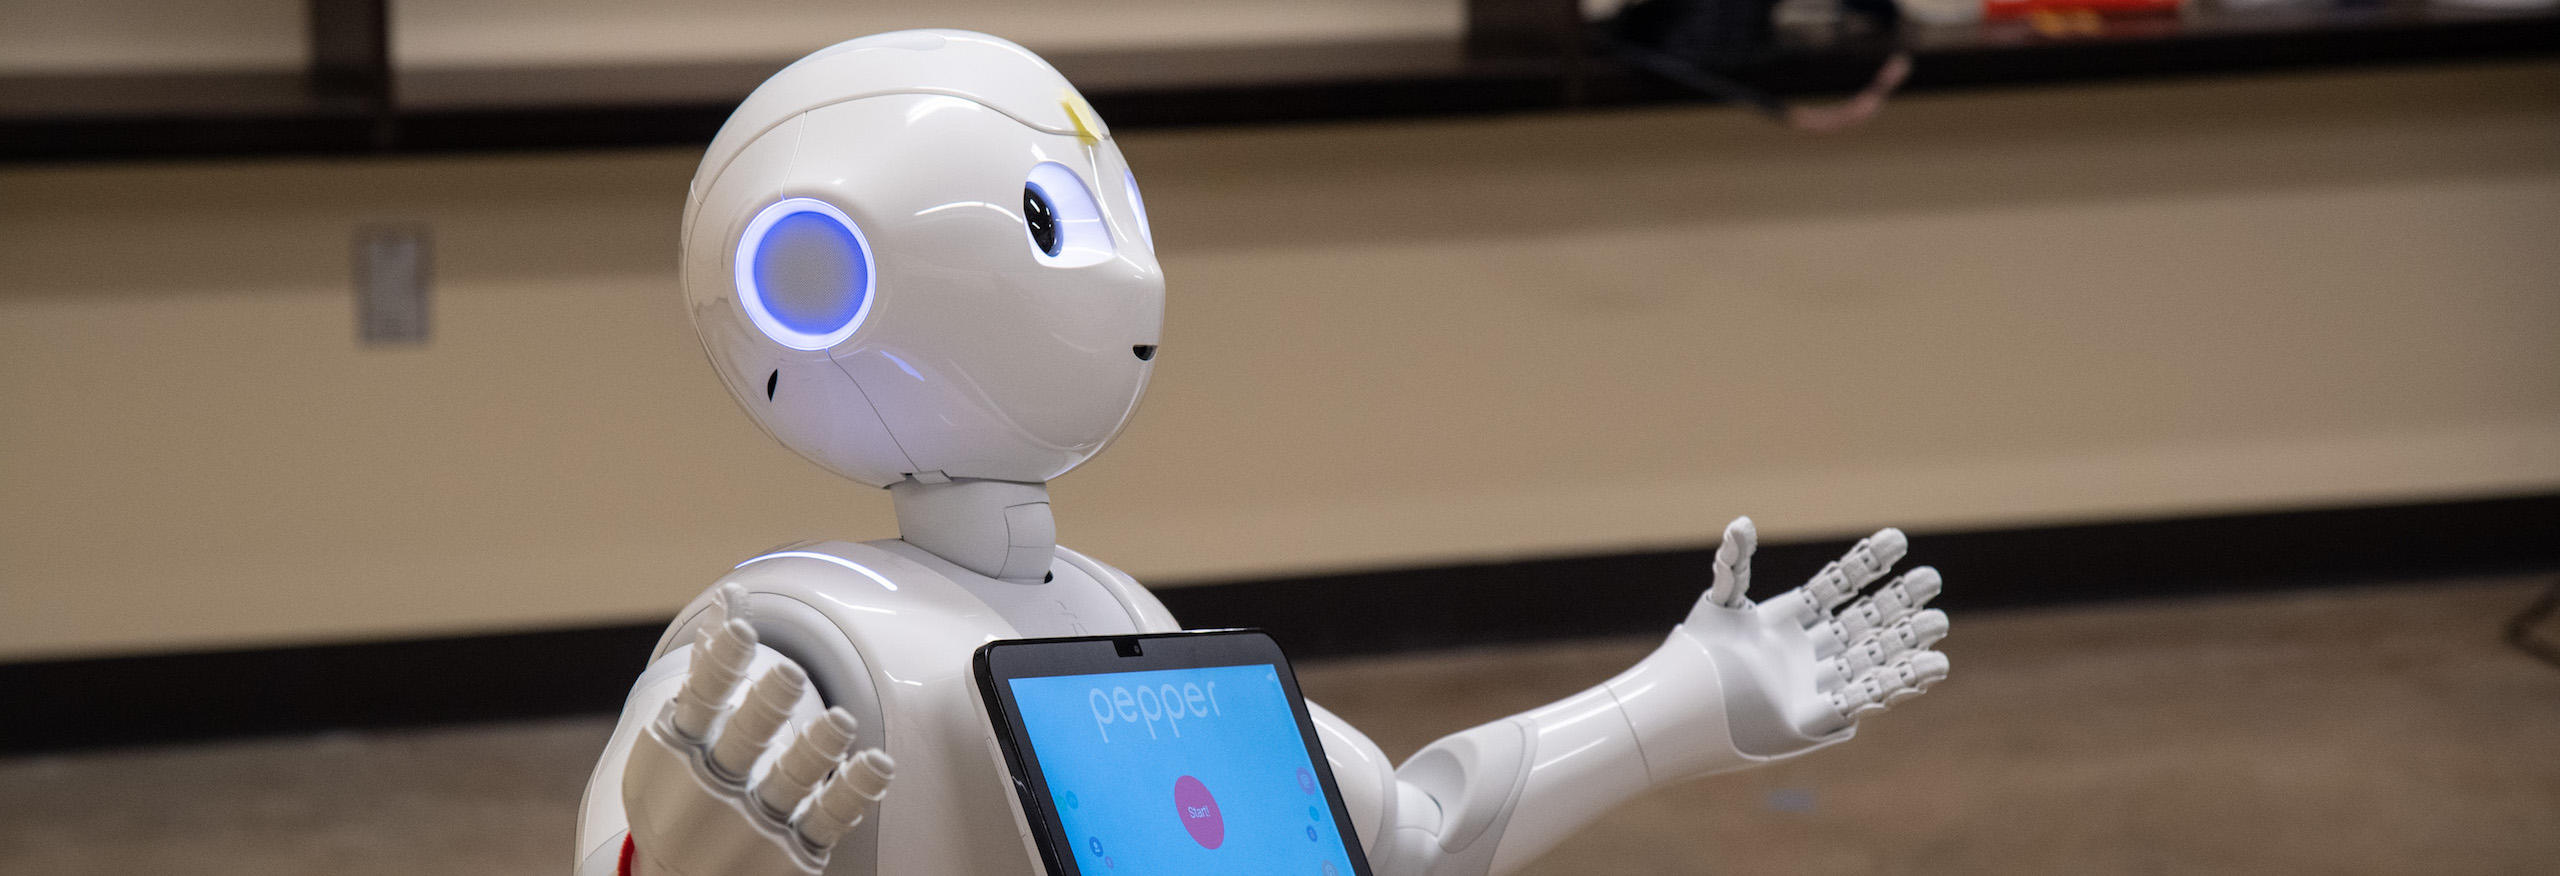 Pepper the robot sings nursery rhymes during a study